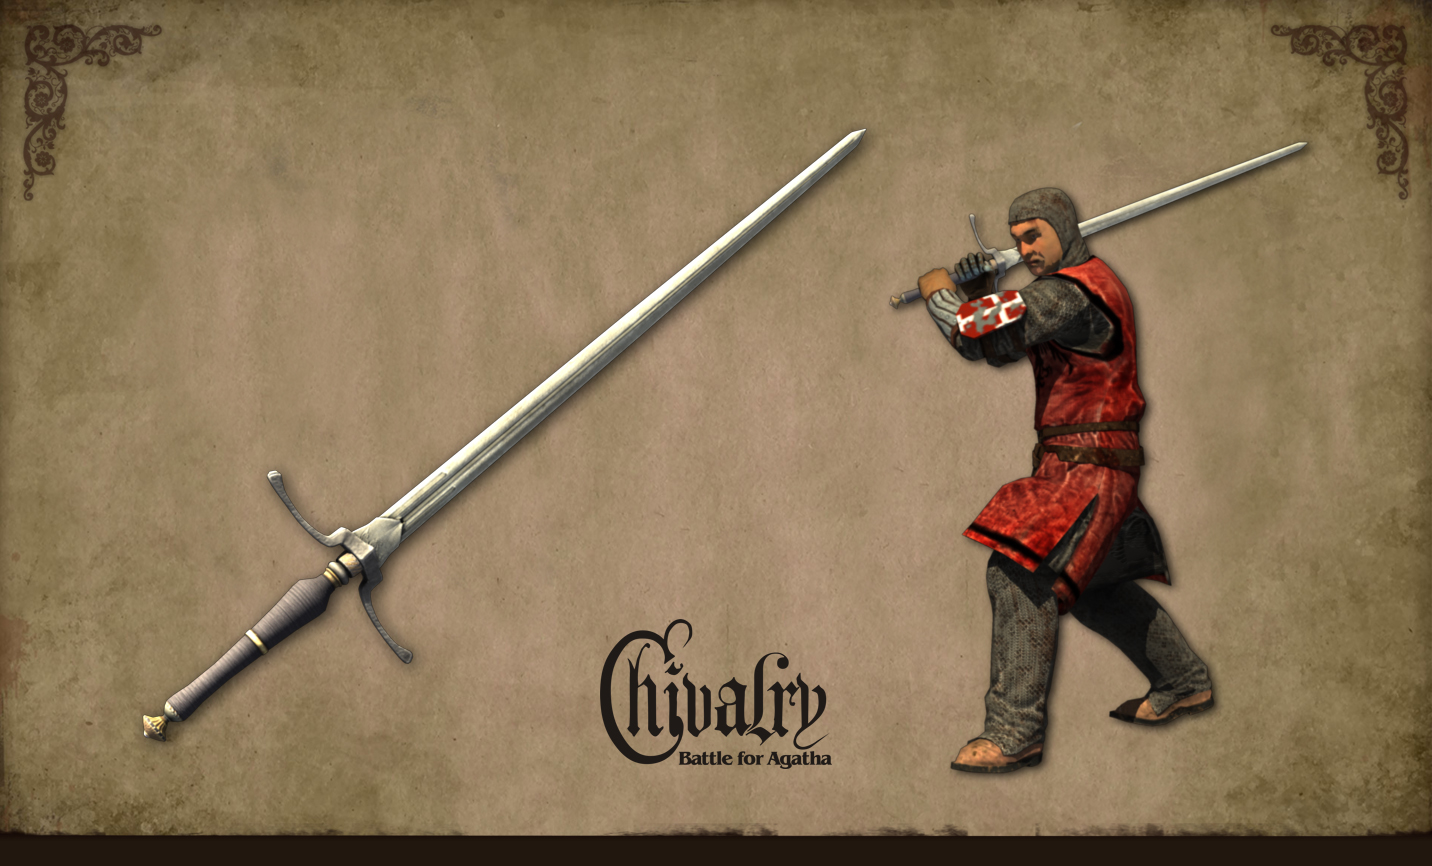 chivalry from medieval ages to today essay Chivalry essays and research papers present during the medieval era this was the code of chivalry show chivalry.